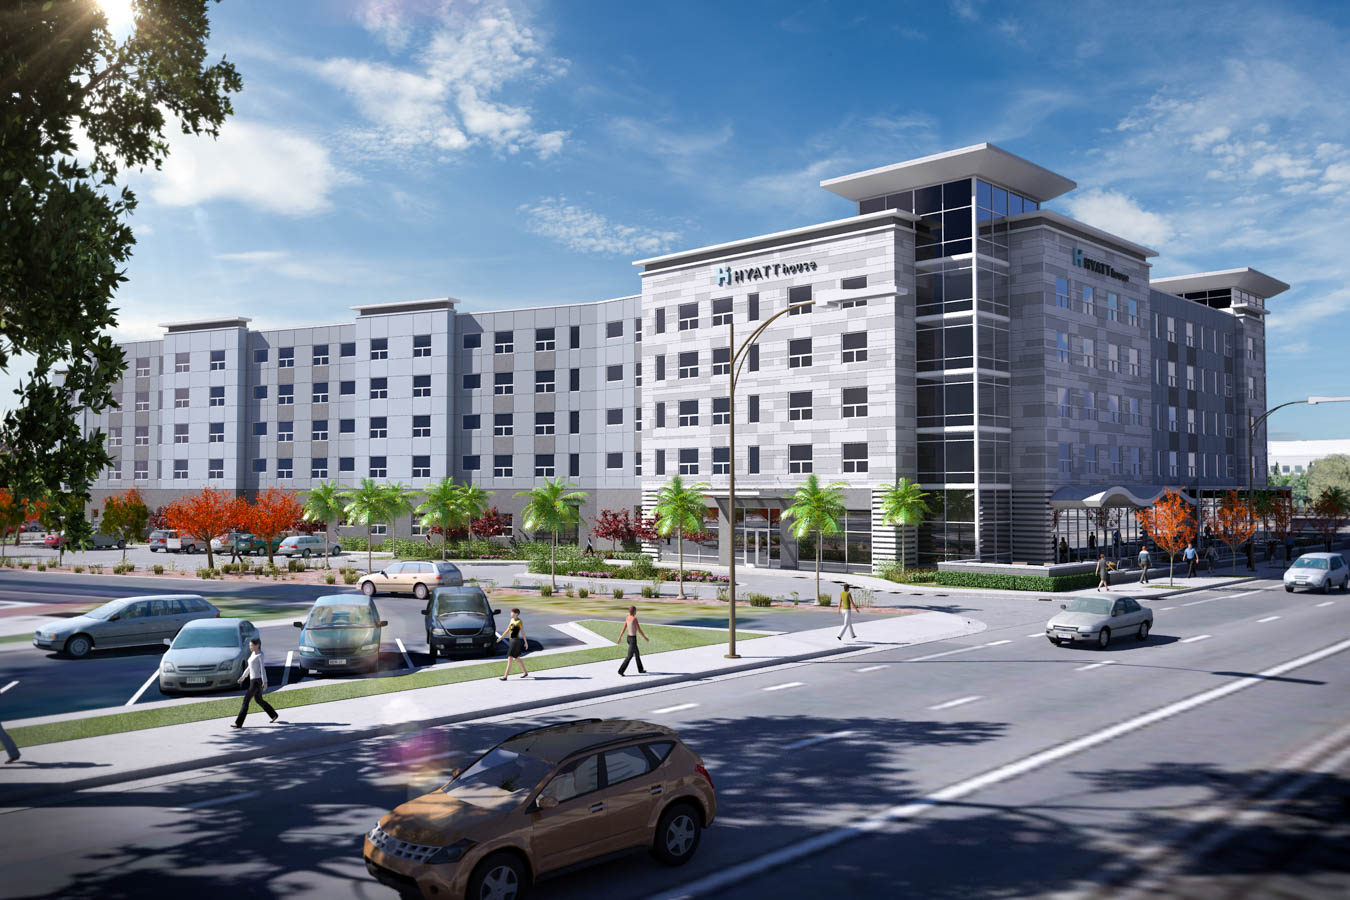 Hyatt House + Hyatt Place, San Jose, CA